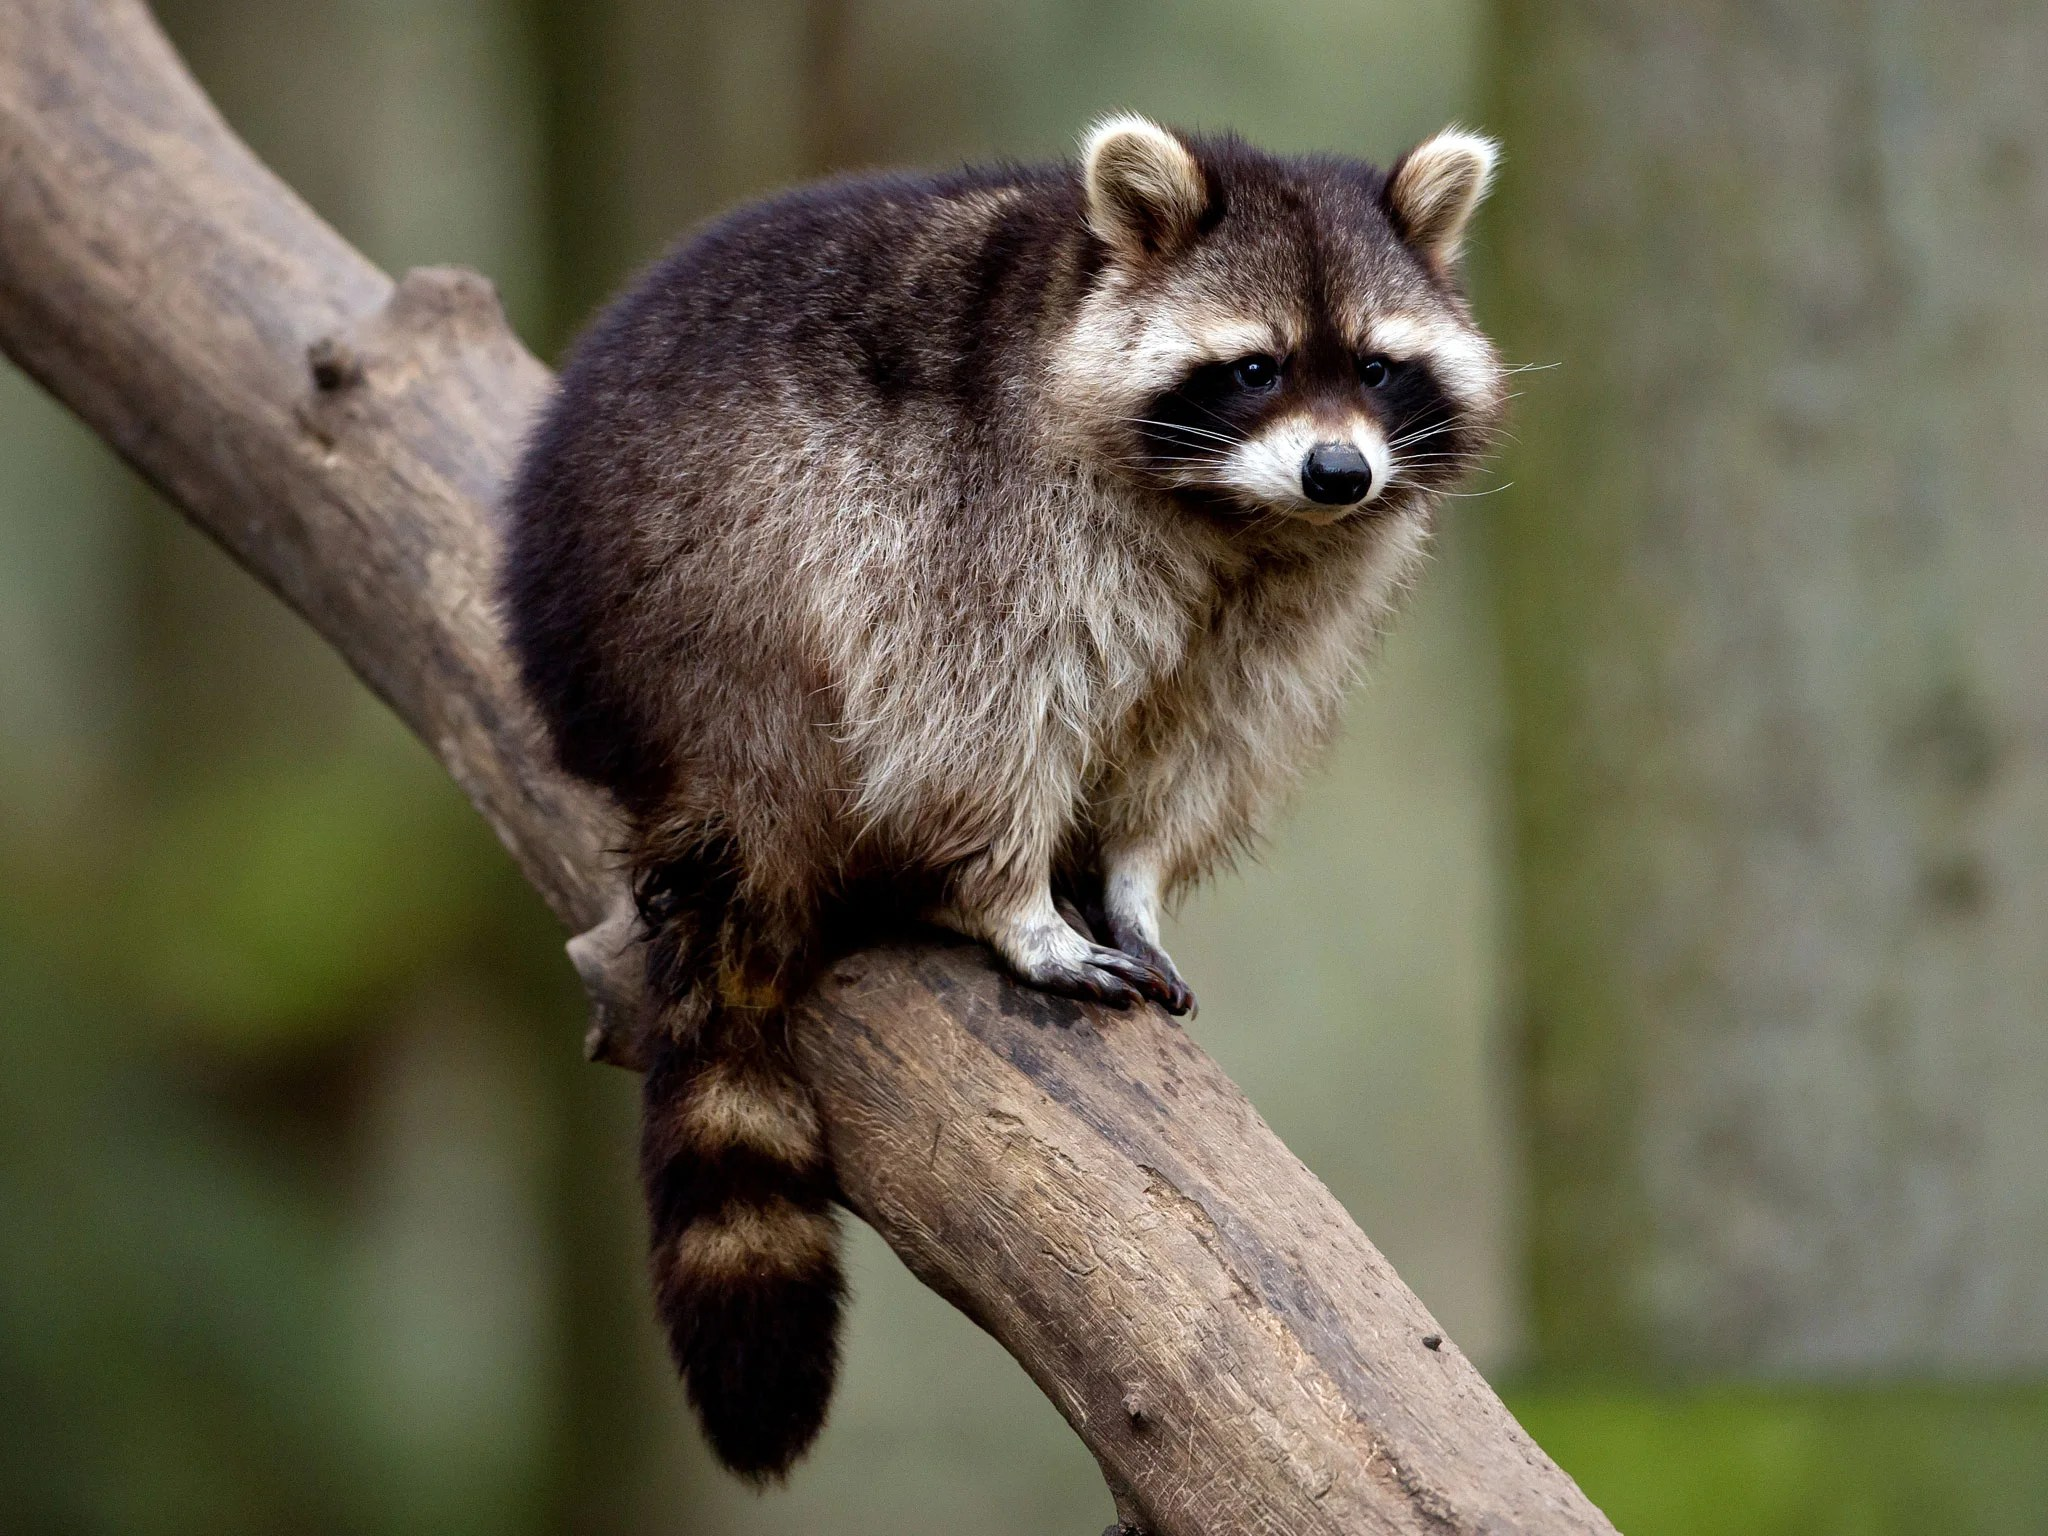 Cute Science Wallpaper Raccoon Escapes From Flooded Somerset Zoo The Independent